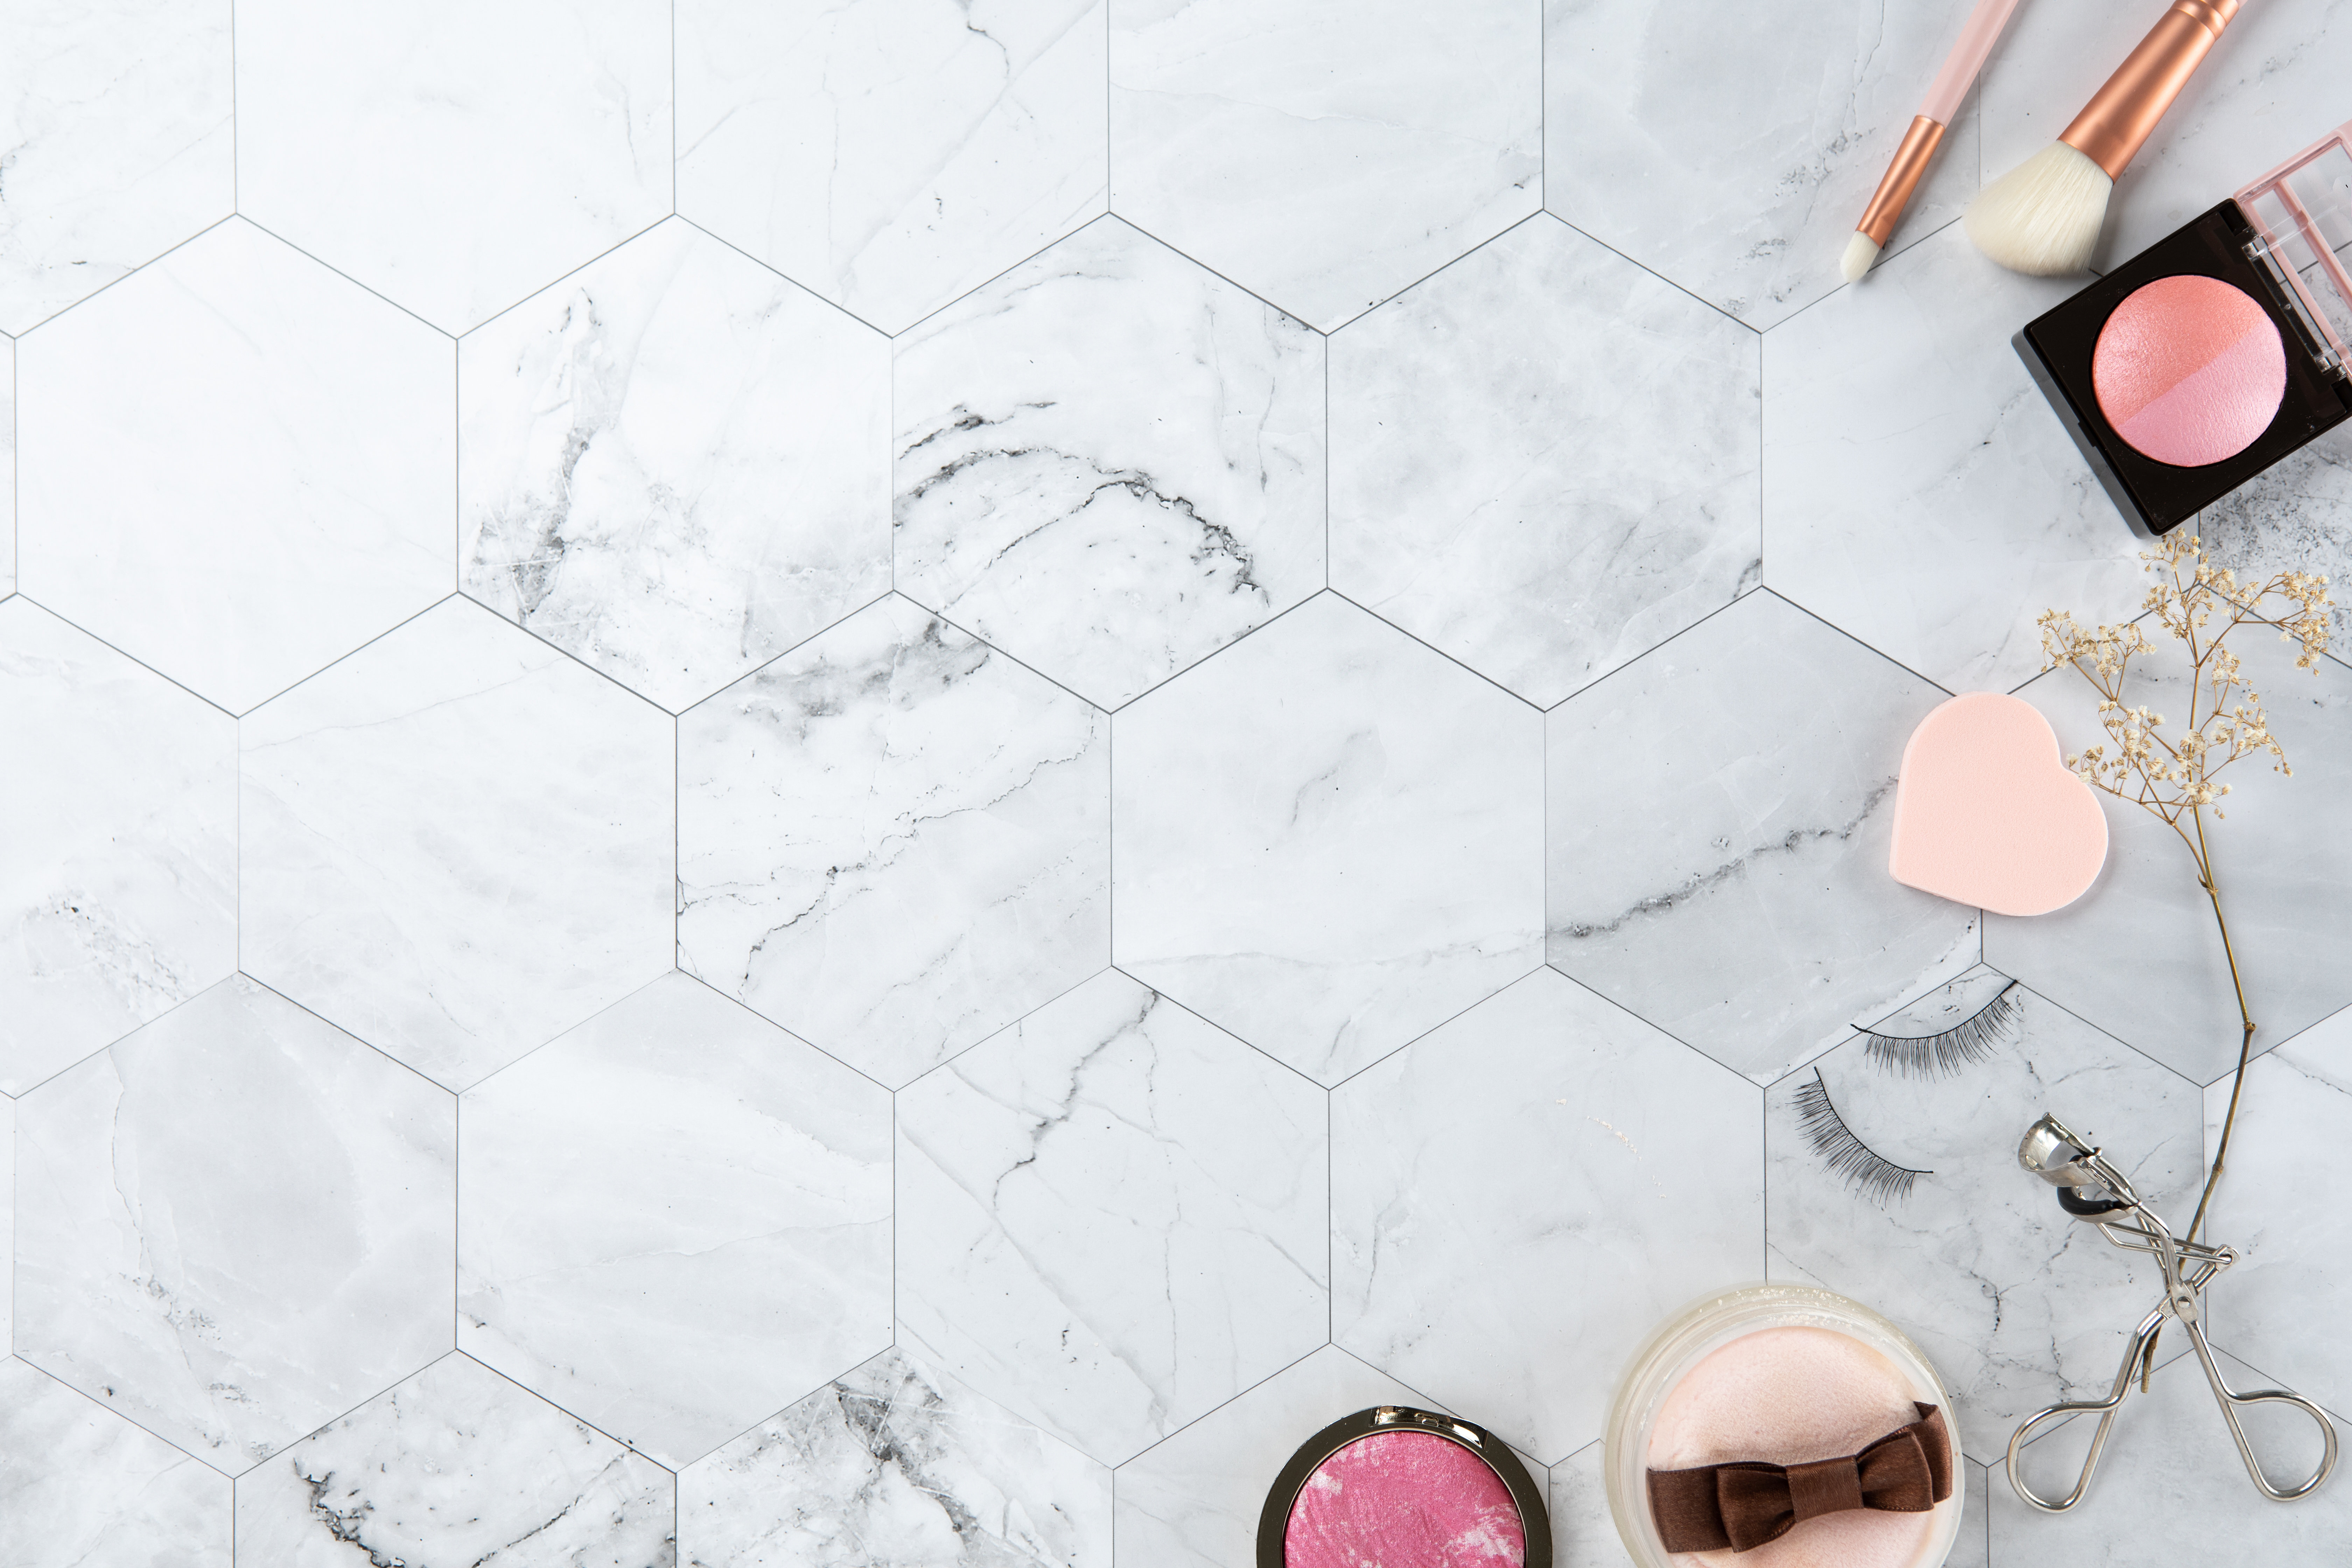 How to Cut Porcelain Floor Tile Without Chipping  Home Guides